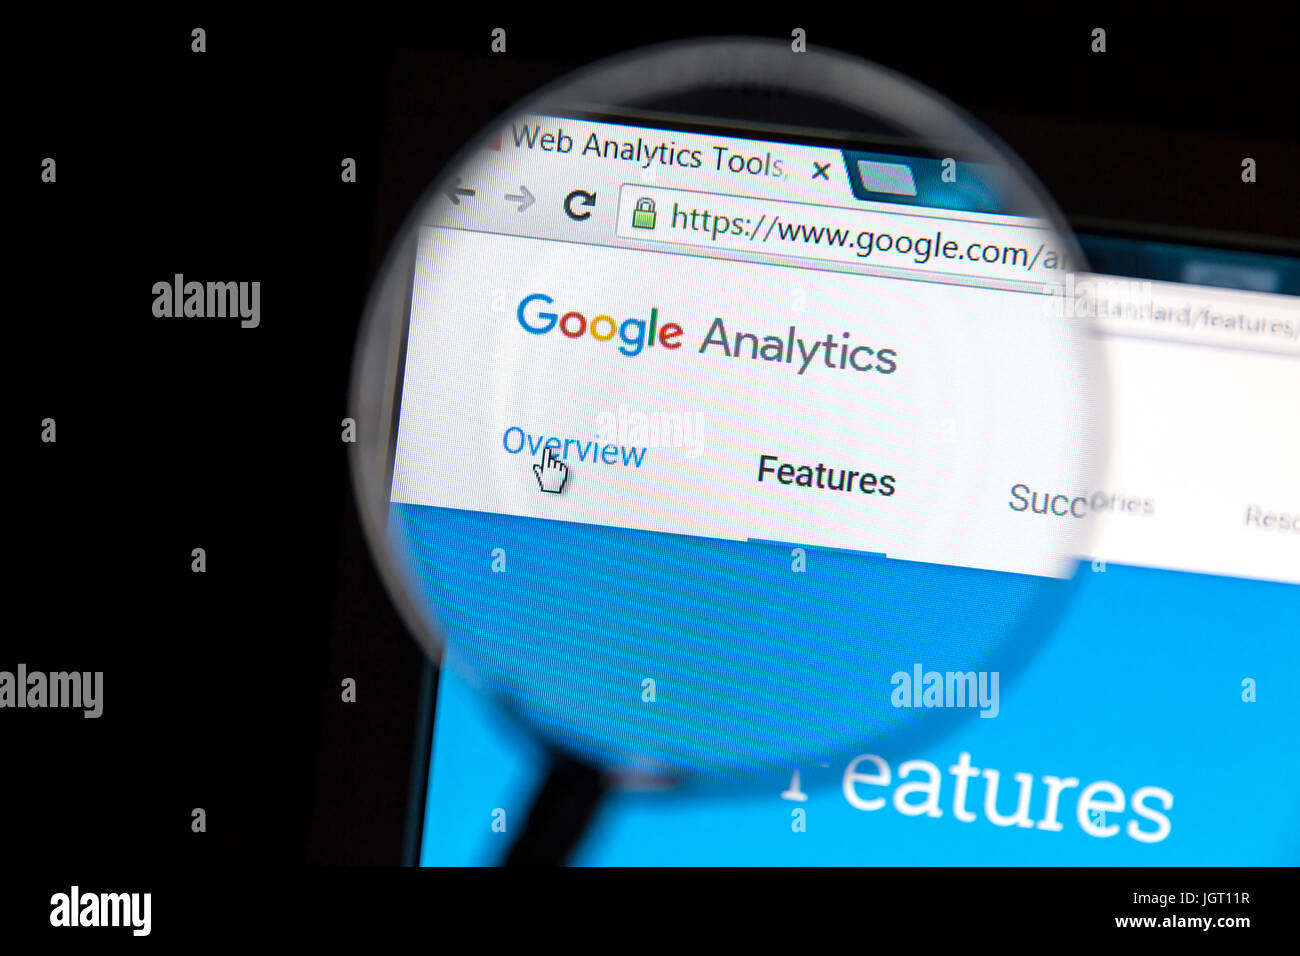 Google Analytics website under a magnifying glass. Google Analytics is a web analytics service offered by Google - Stock Image